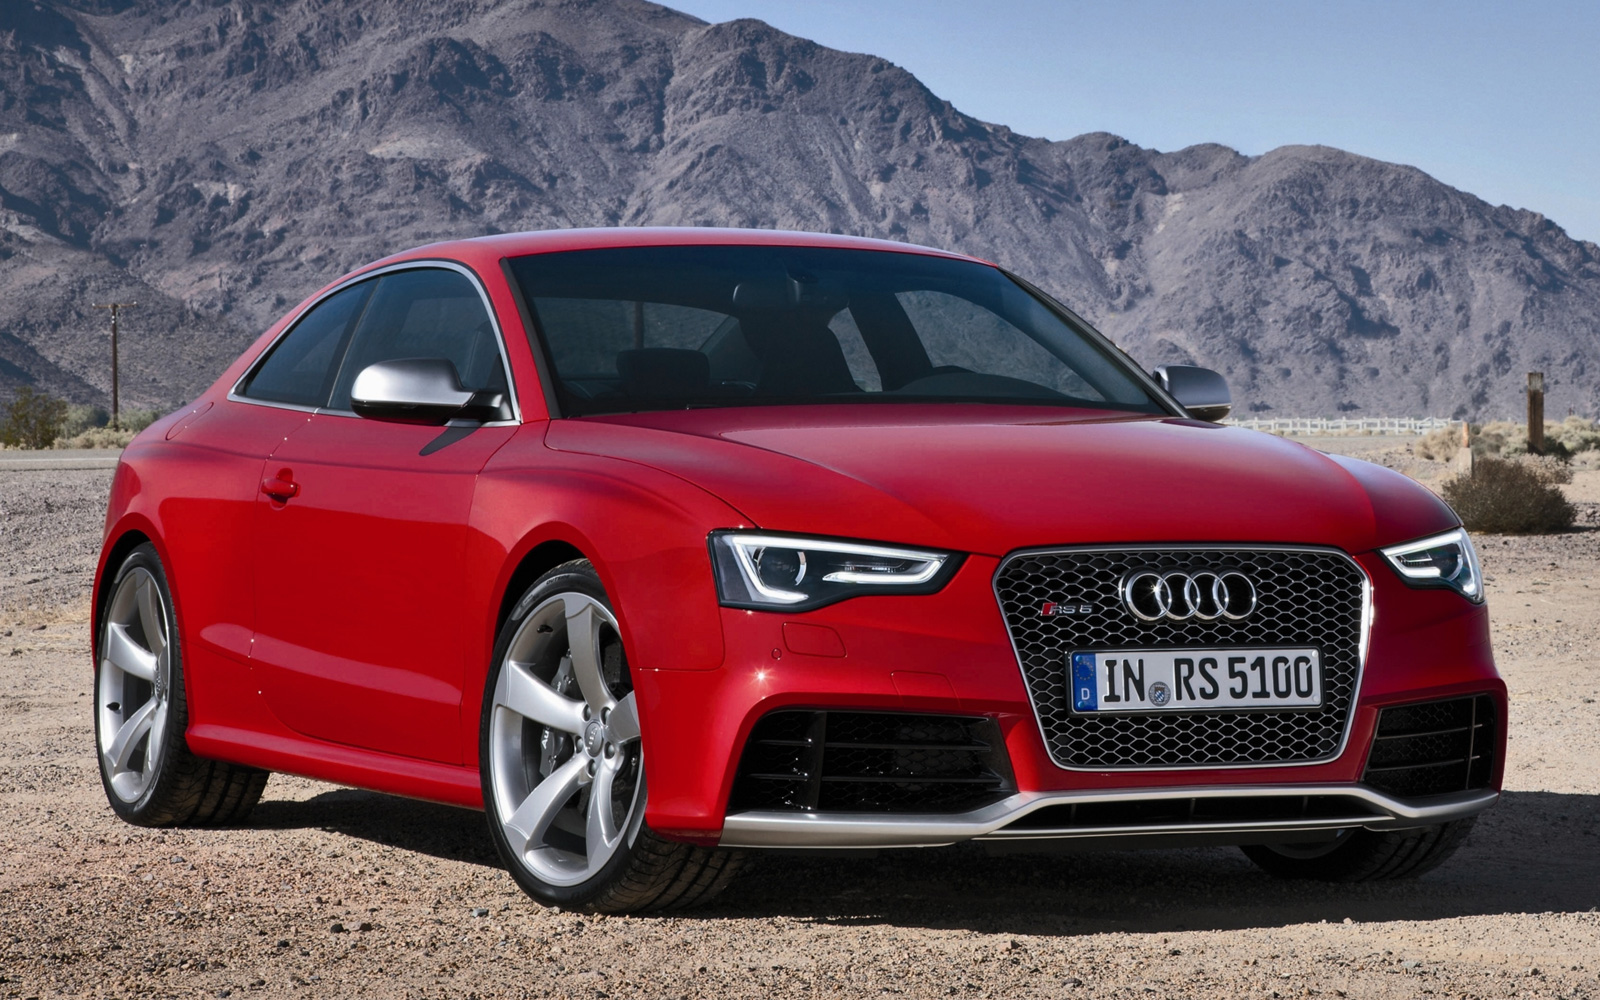 2016 Audi RS5 Coupe Specs - 2018 Cars Coming Out